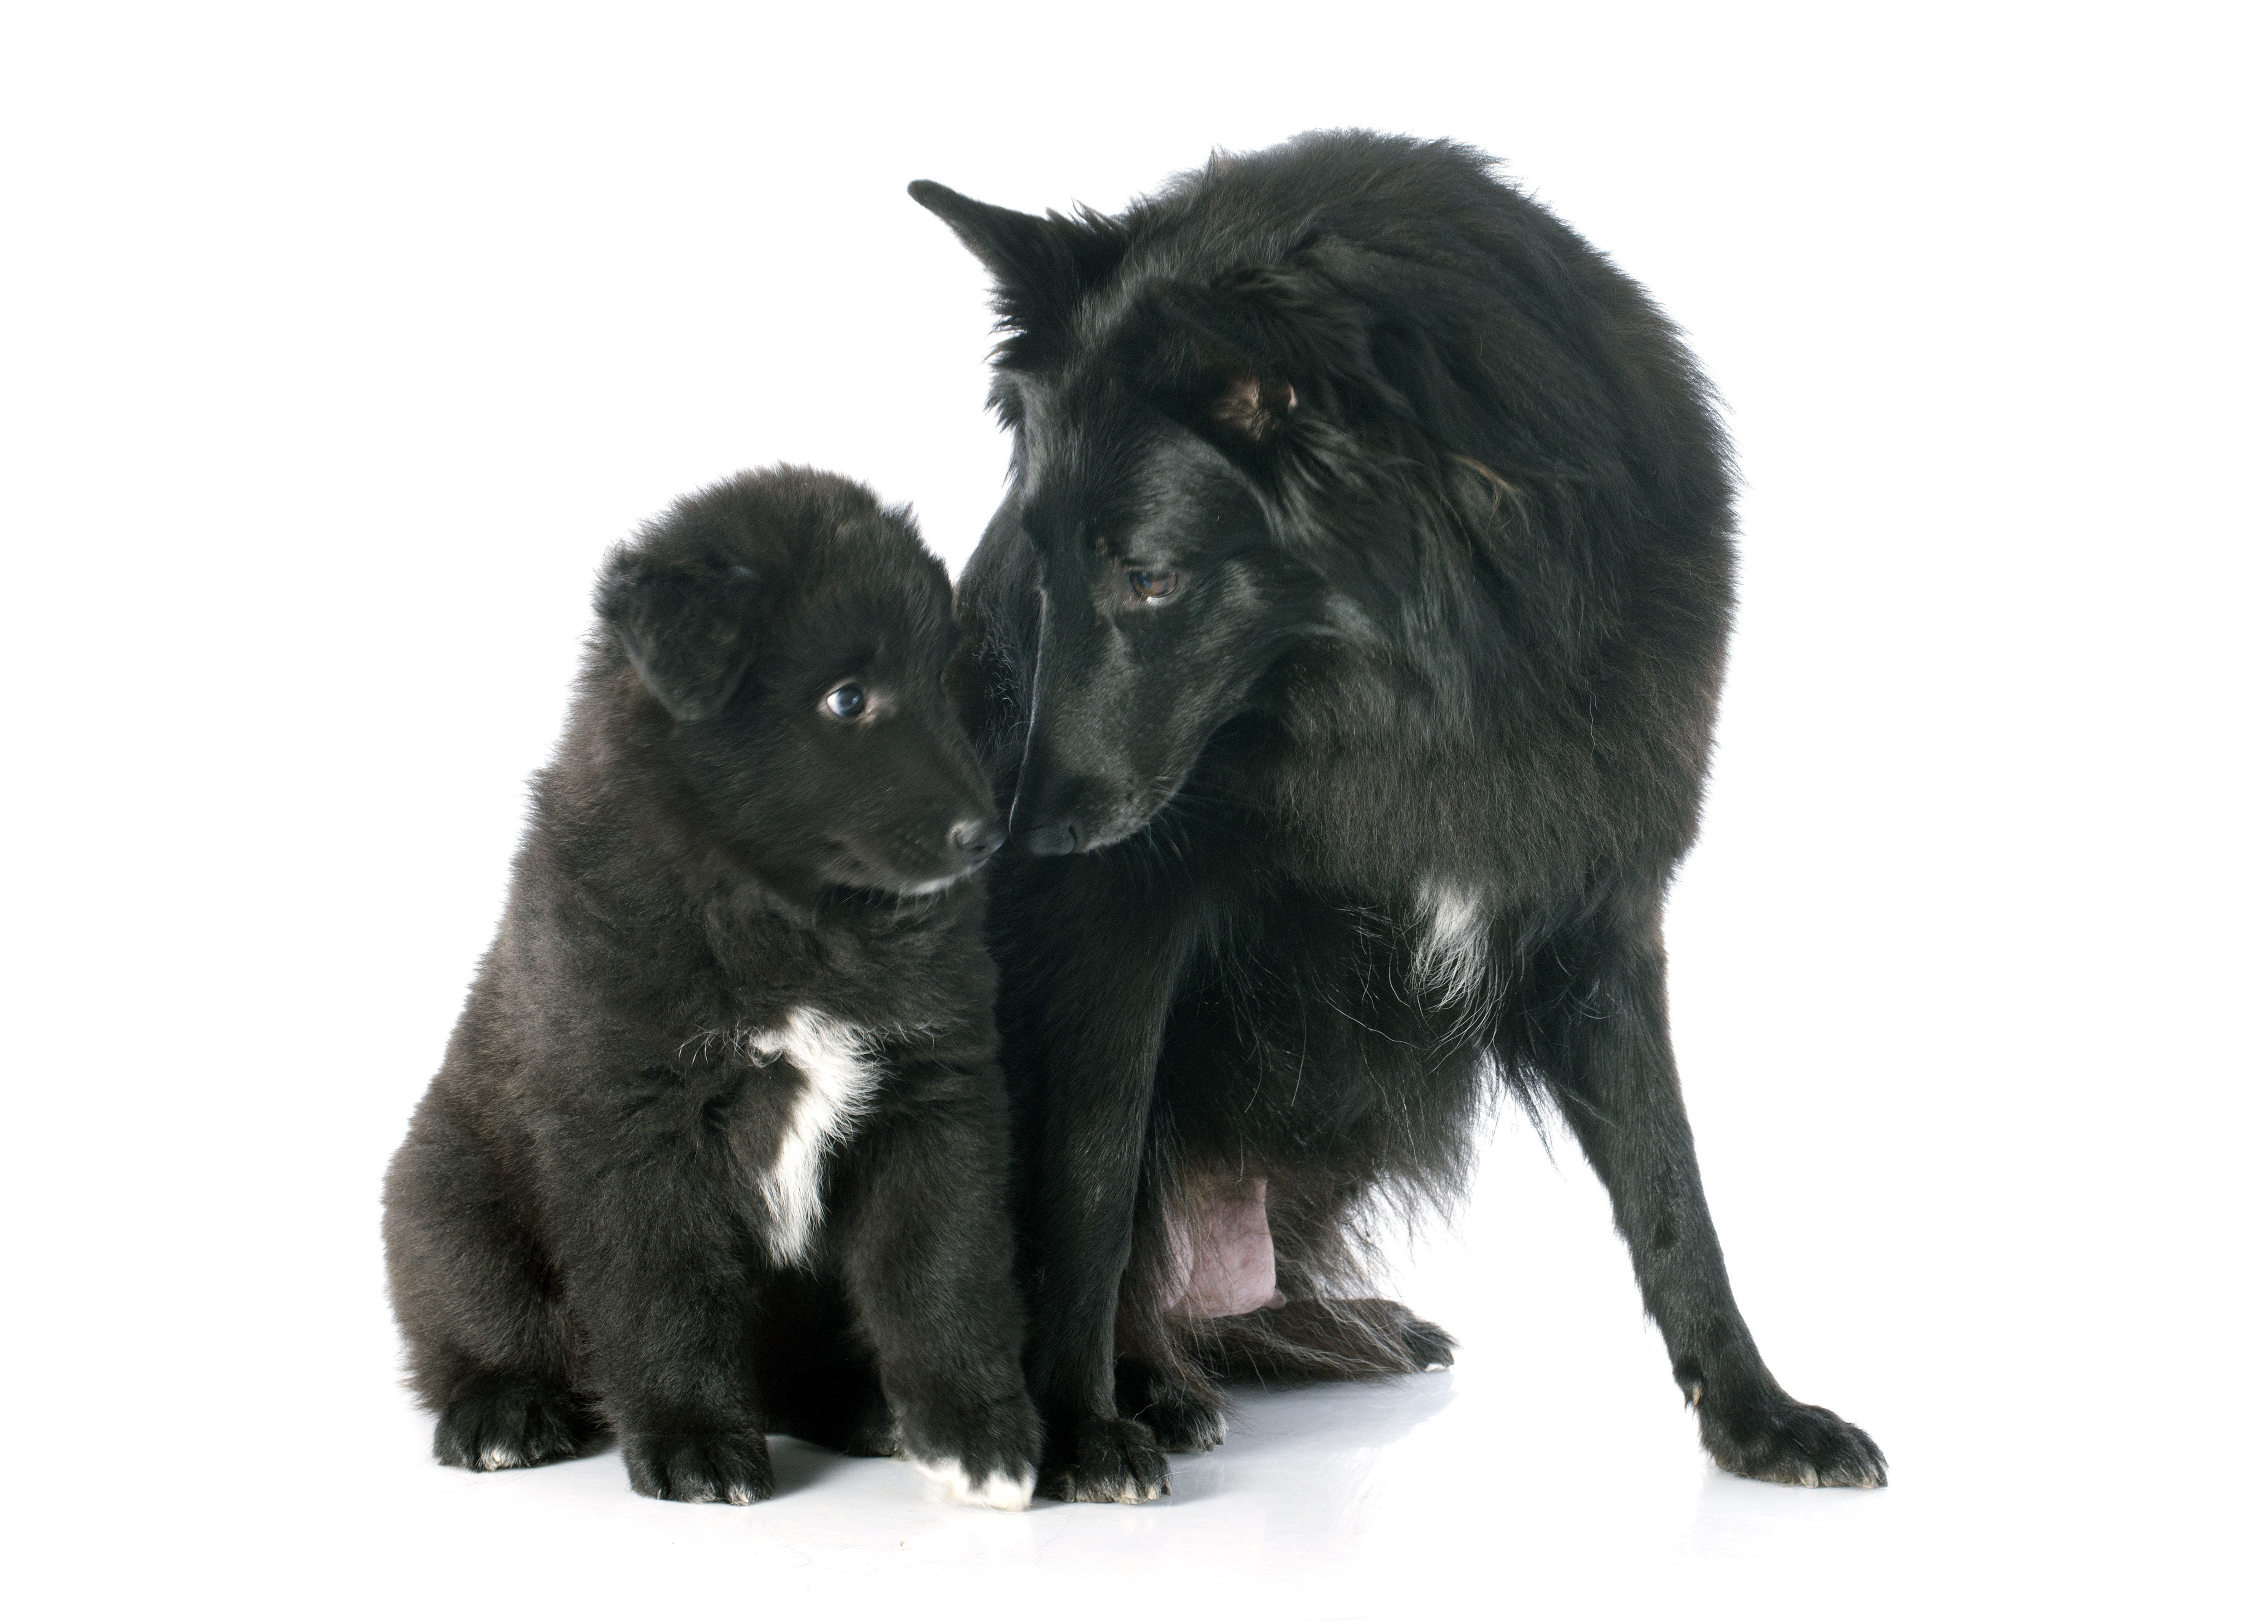 Belgian Sheepdog (Groenendael) adult and puppy sitting in front of a white background